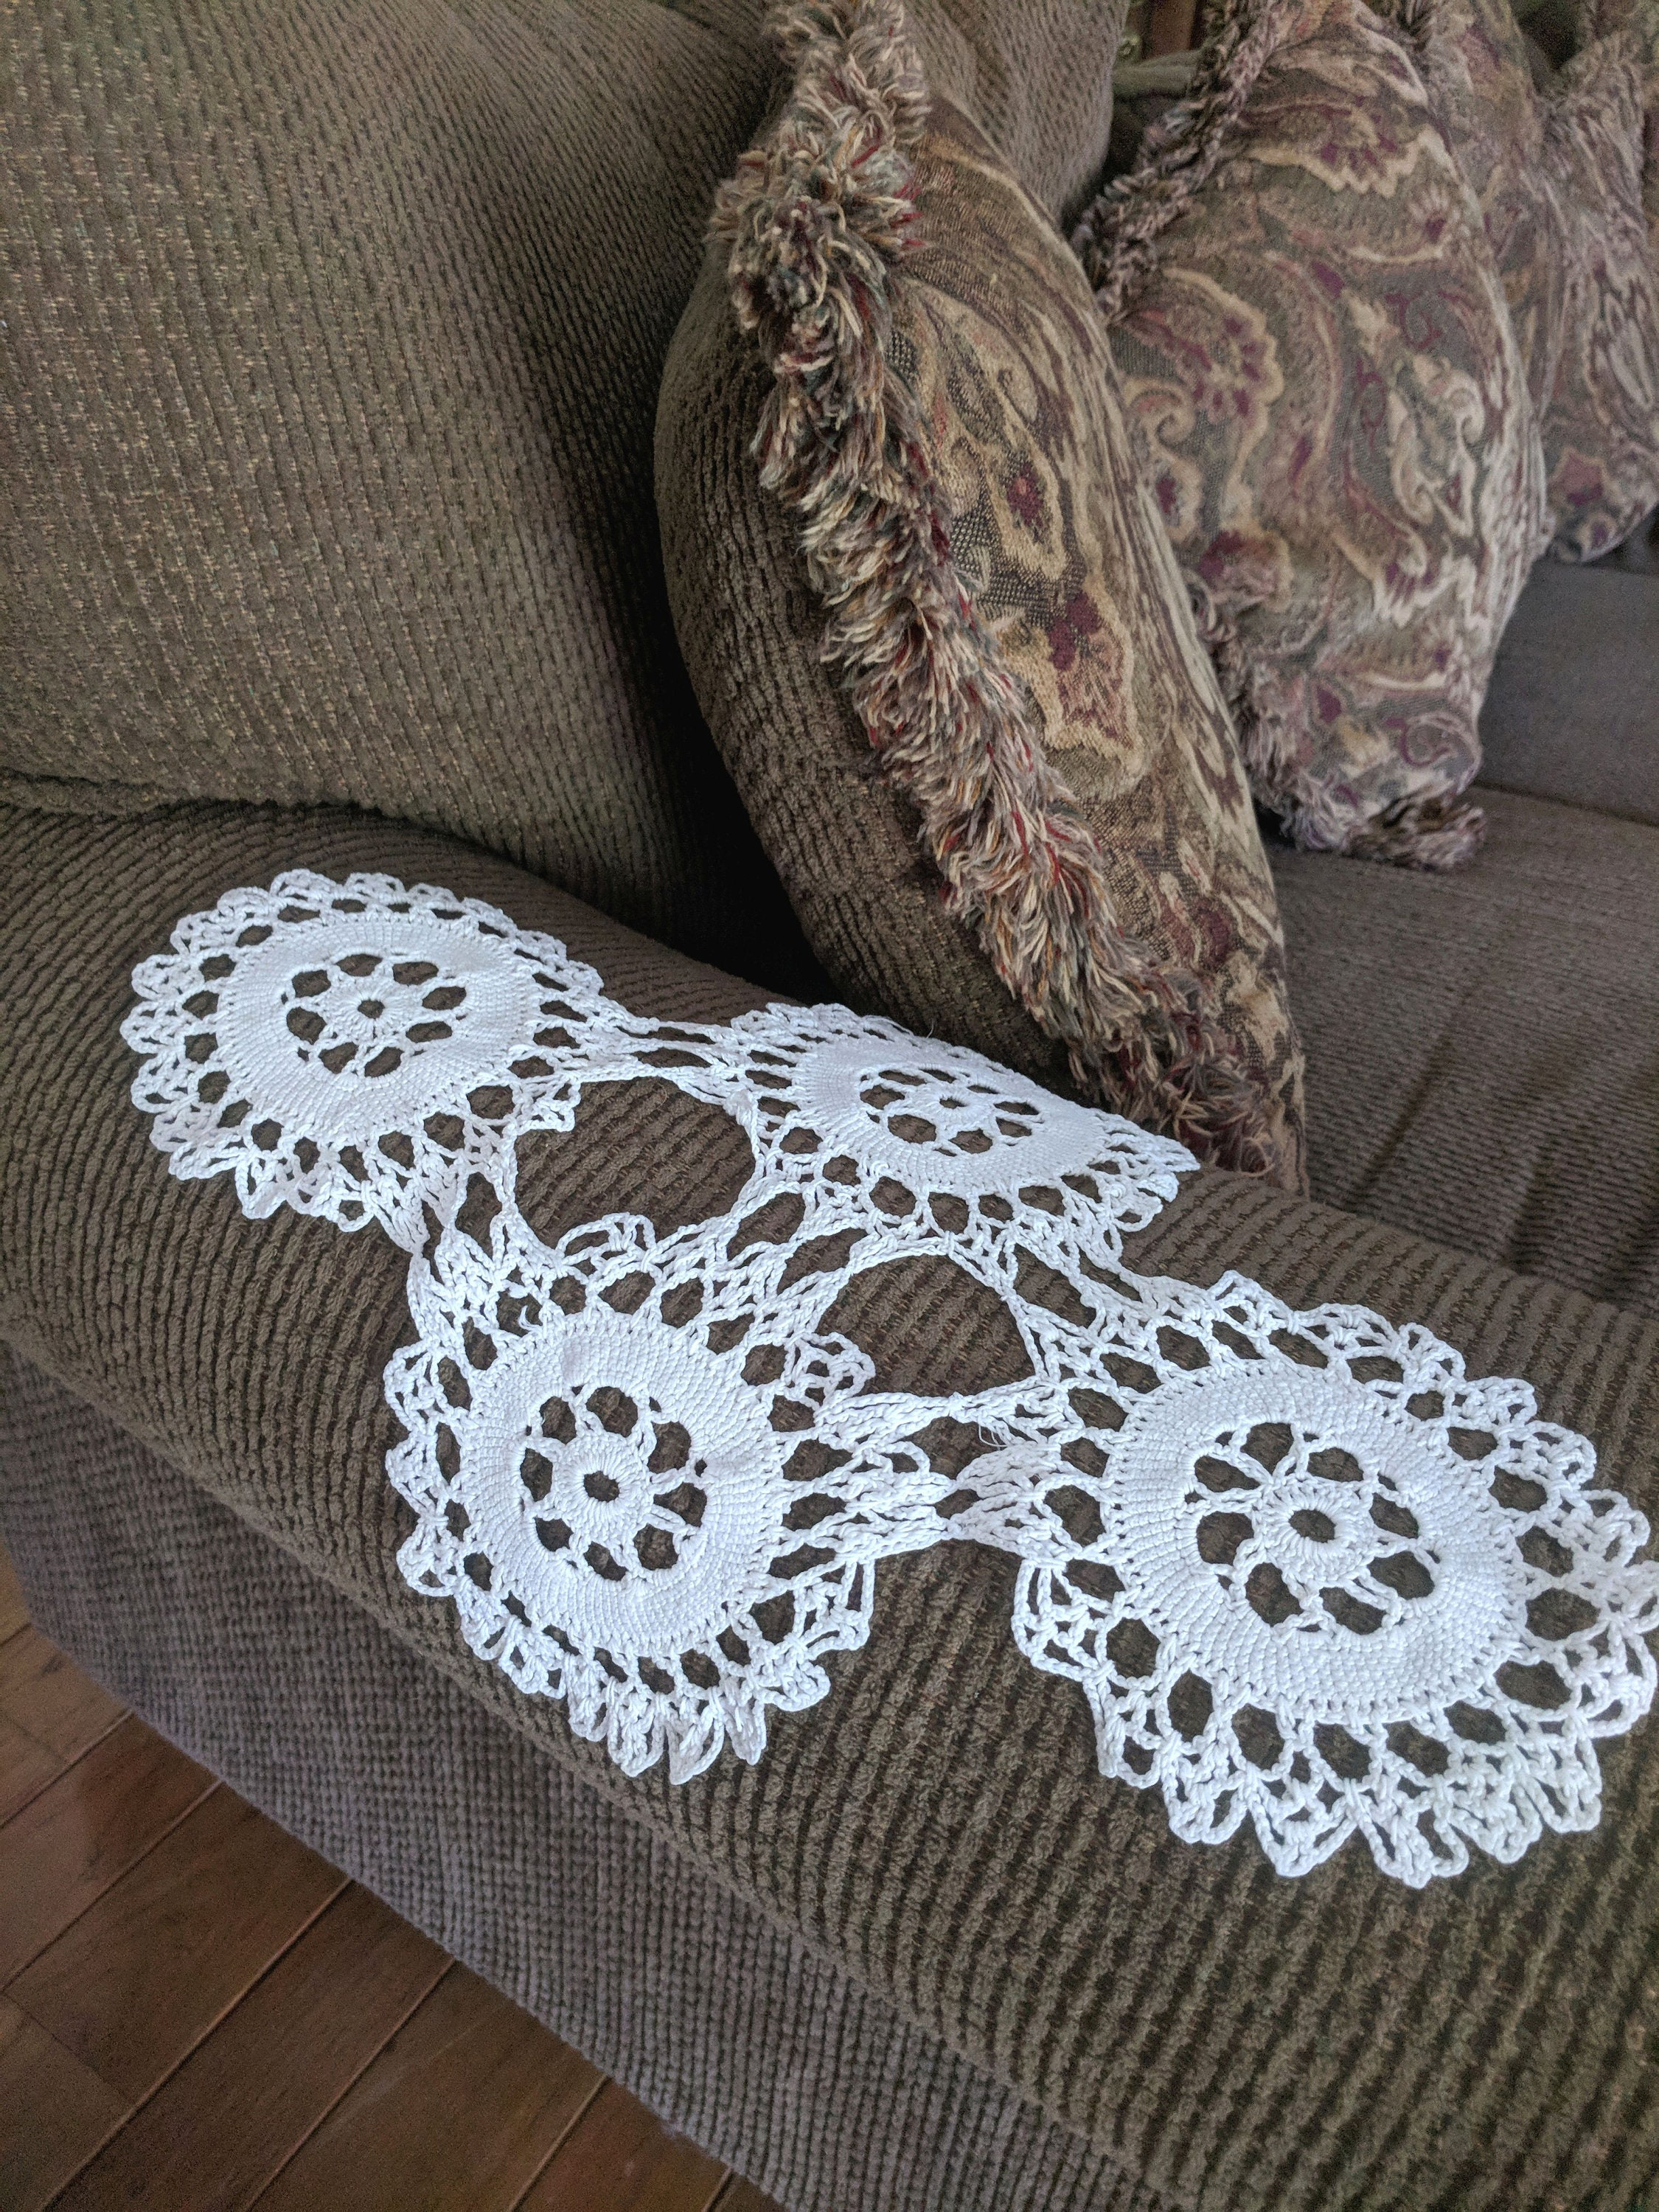 Free Shipping Pair Of Vintage Armchair Doily Antimacassar